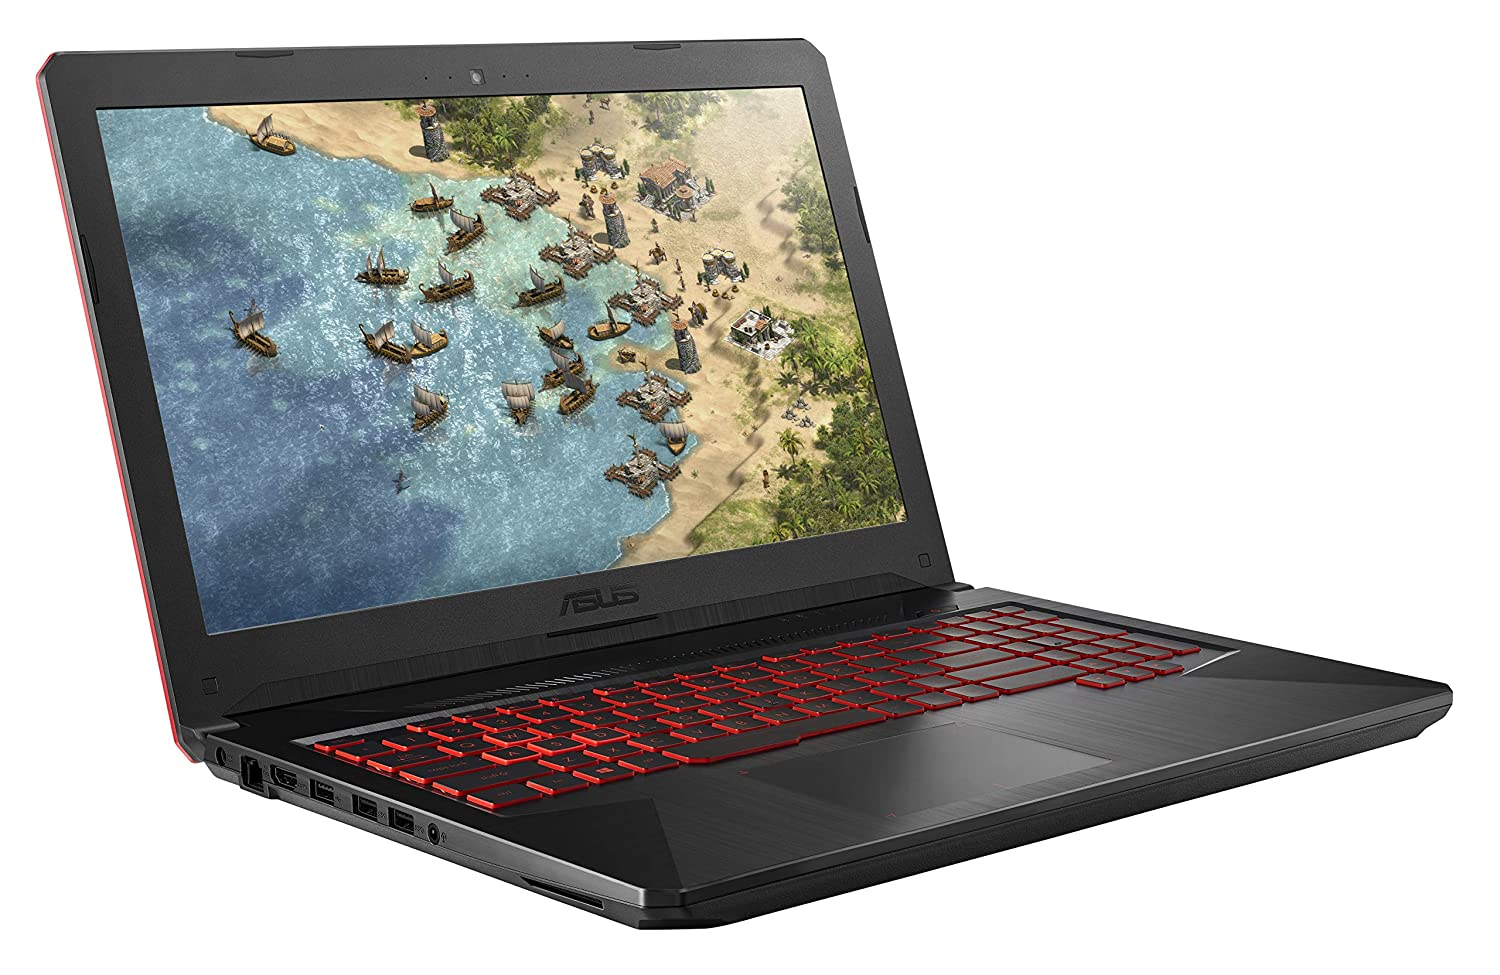 "ASUS TUF Gaming Laptop FX504 15.6"" 120Hz 3ms Full HD, Intel Core i7-8750H Processor, GeForce GTX 1060 6GB, 16GB DDR4, 256GB PCIe SSD + 1TB HDD, Gigabit WiFi, Windows 10 Home - FX504GM-ES74"